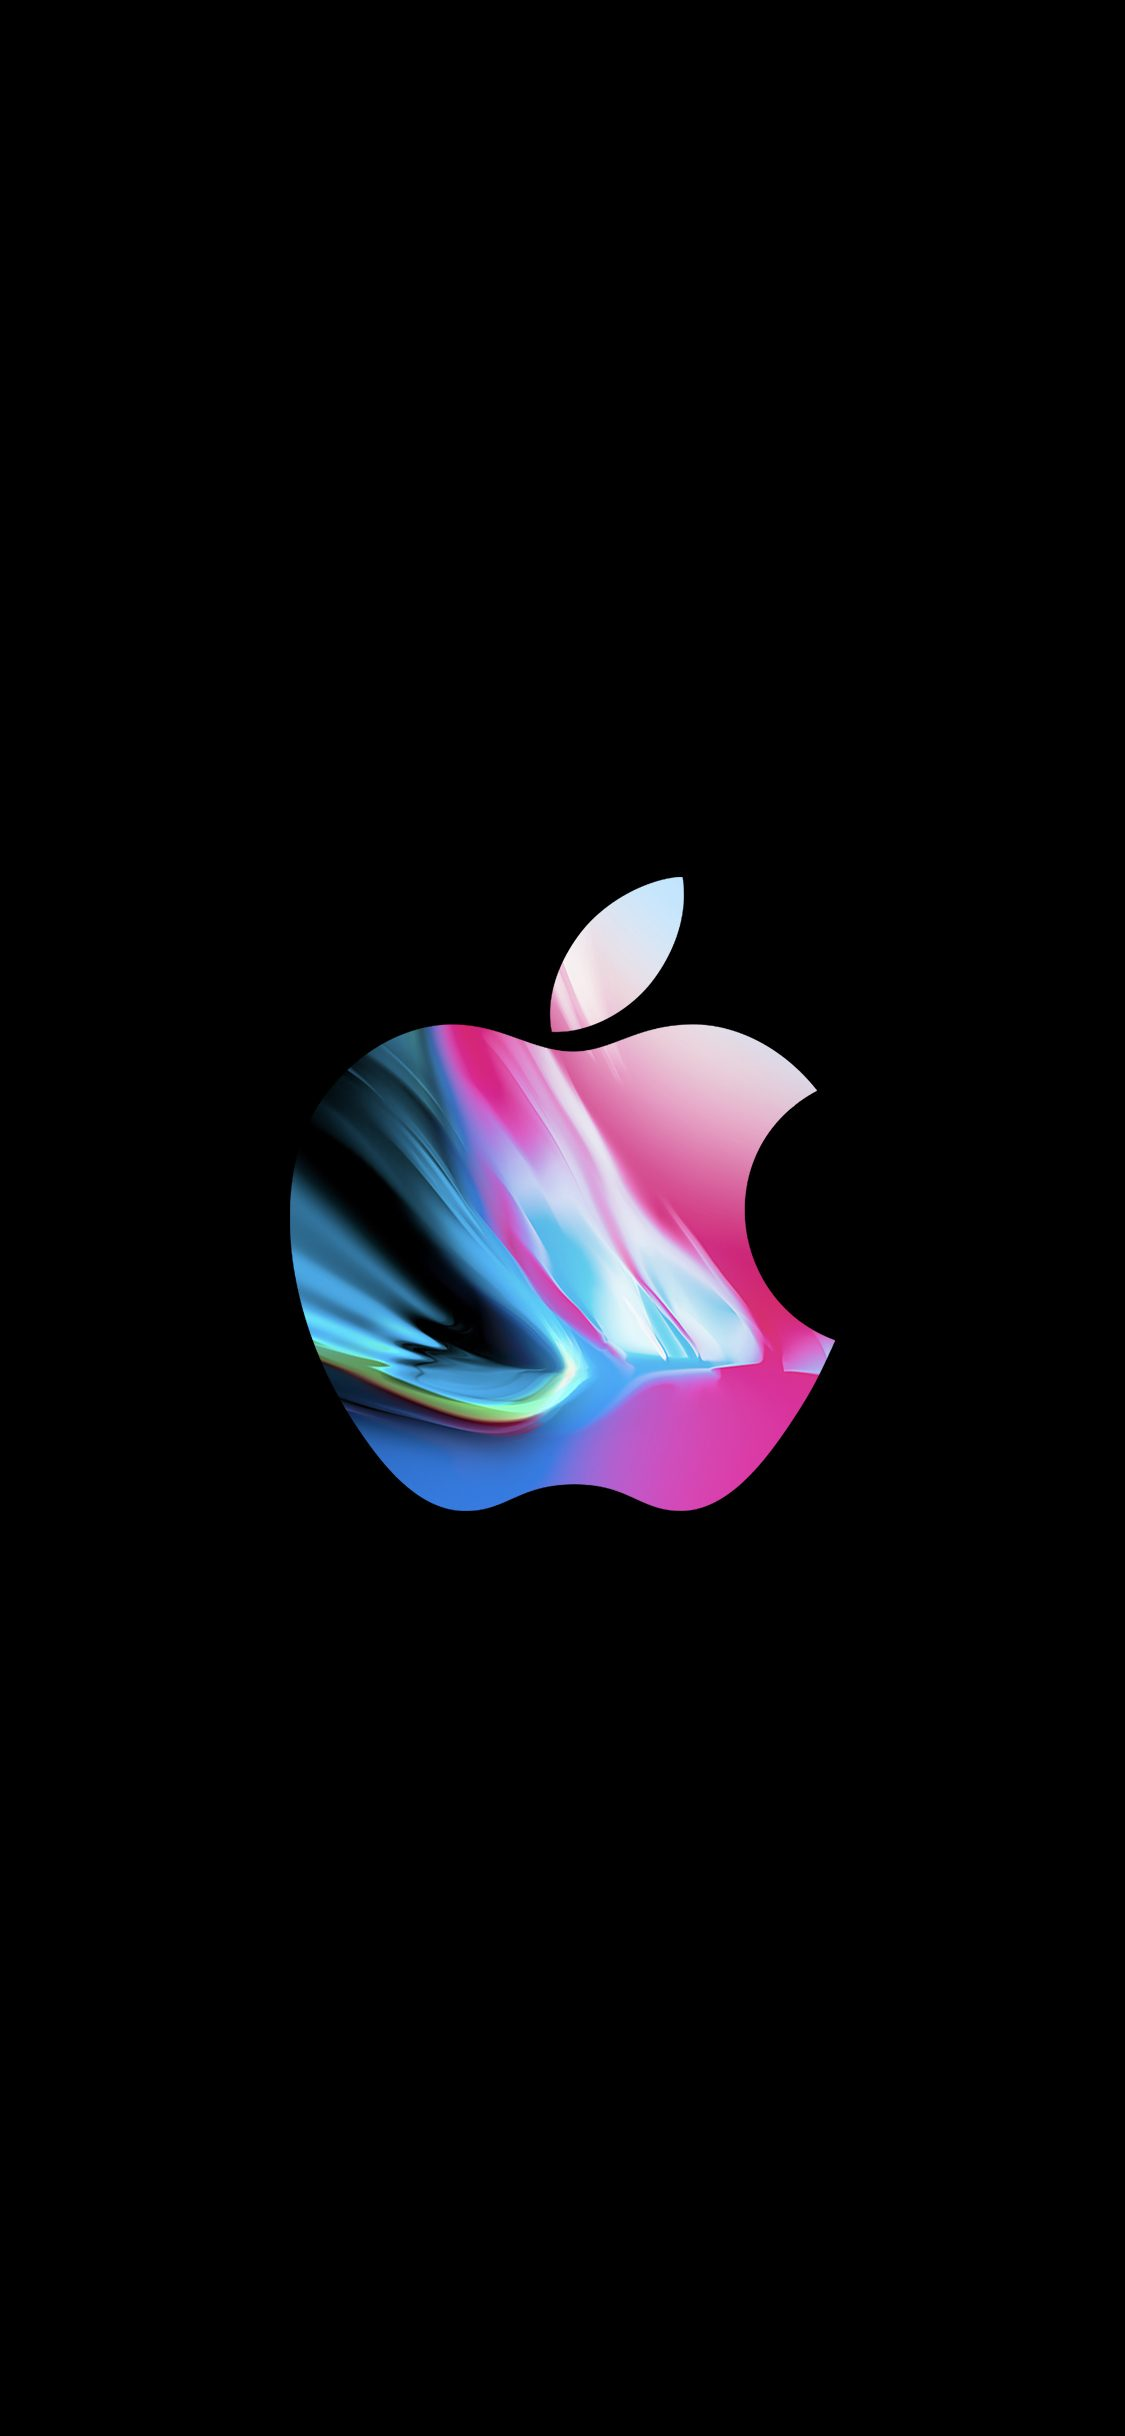 Apple Iphone X Wallpapers Wallpaper Cave